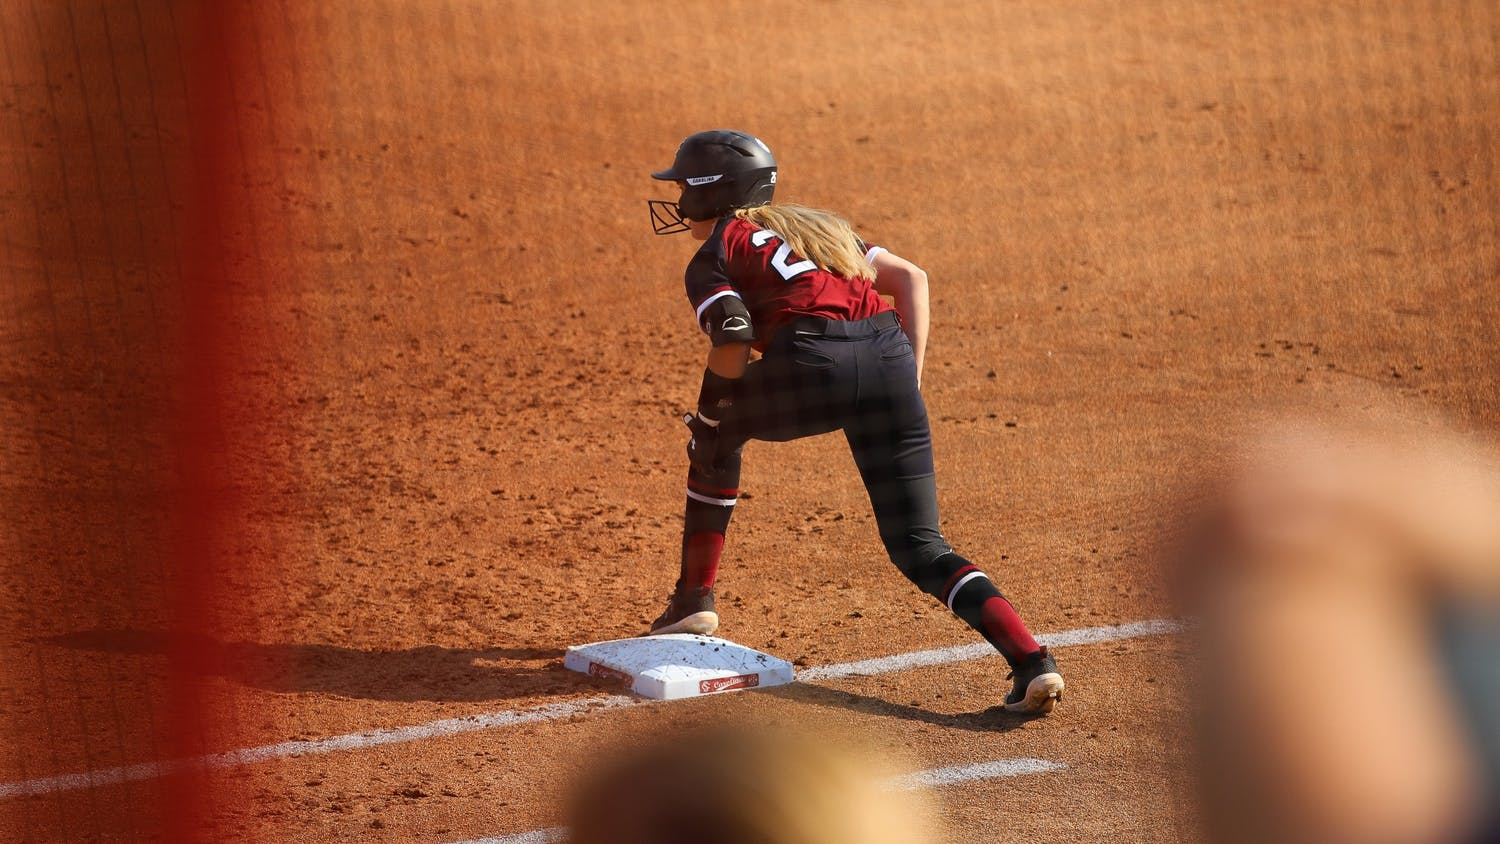 Freshman infielder Riley Blampied stands at first base while preparing to run towards second base.